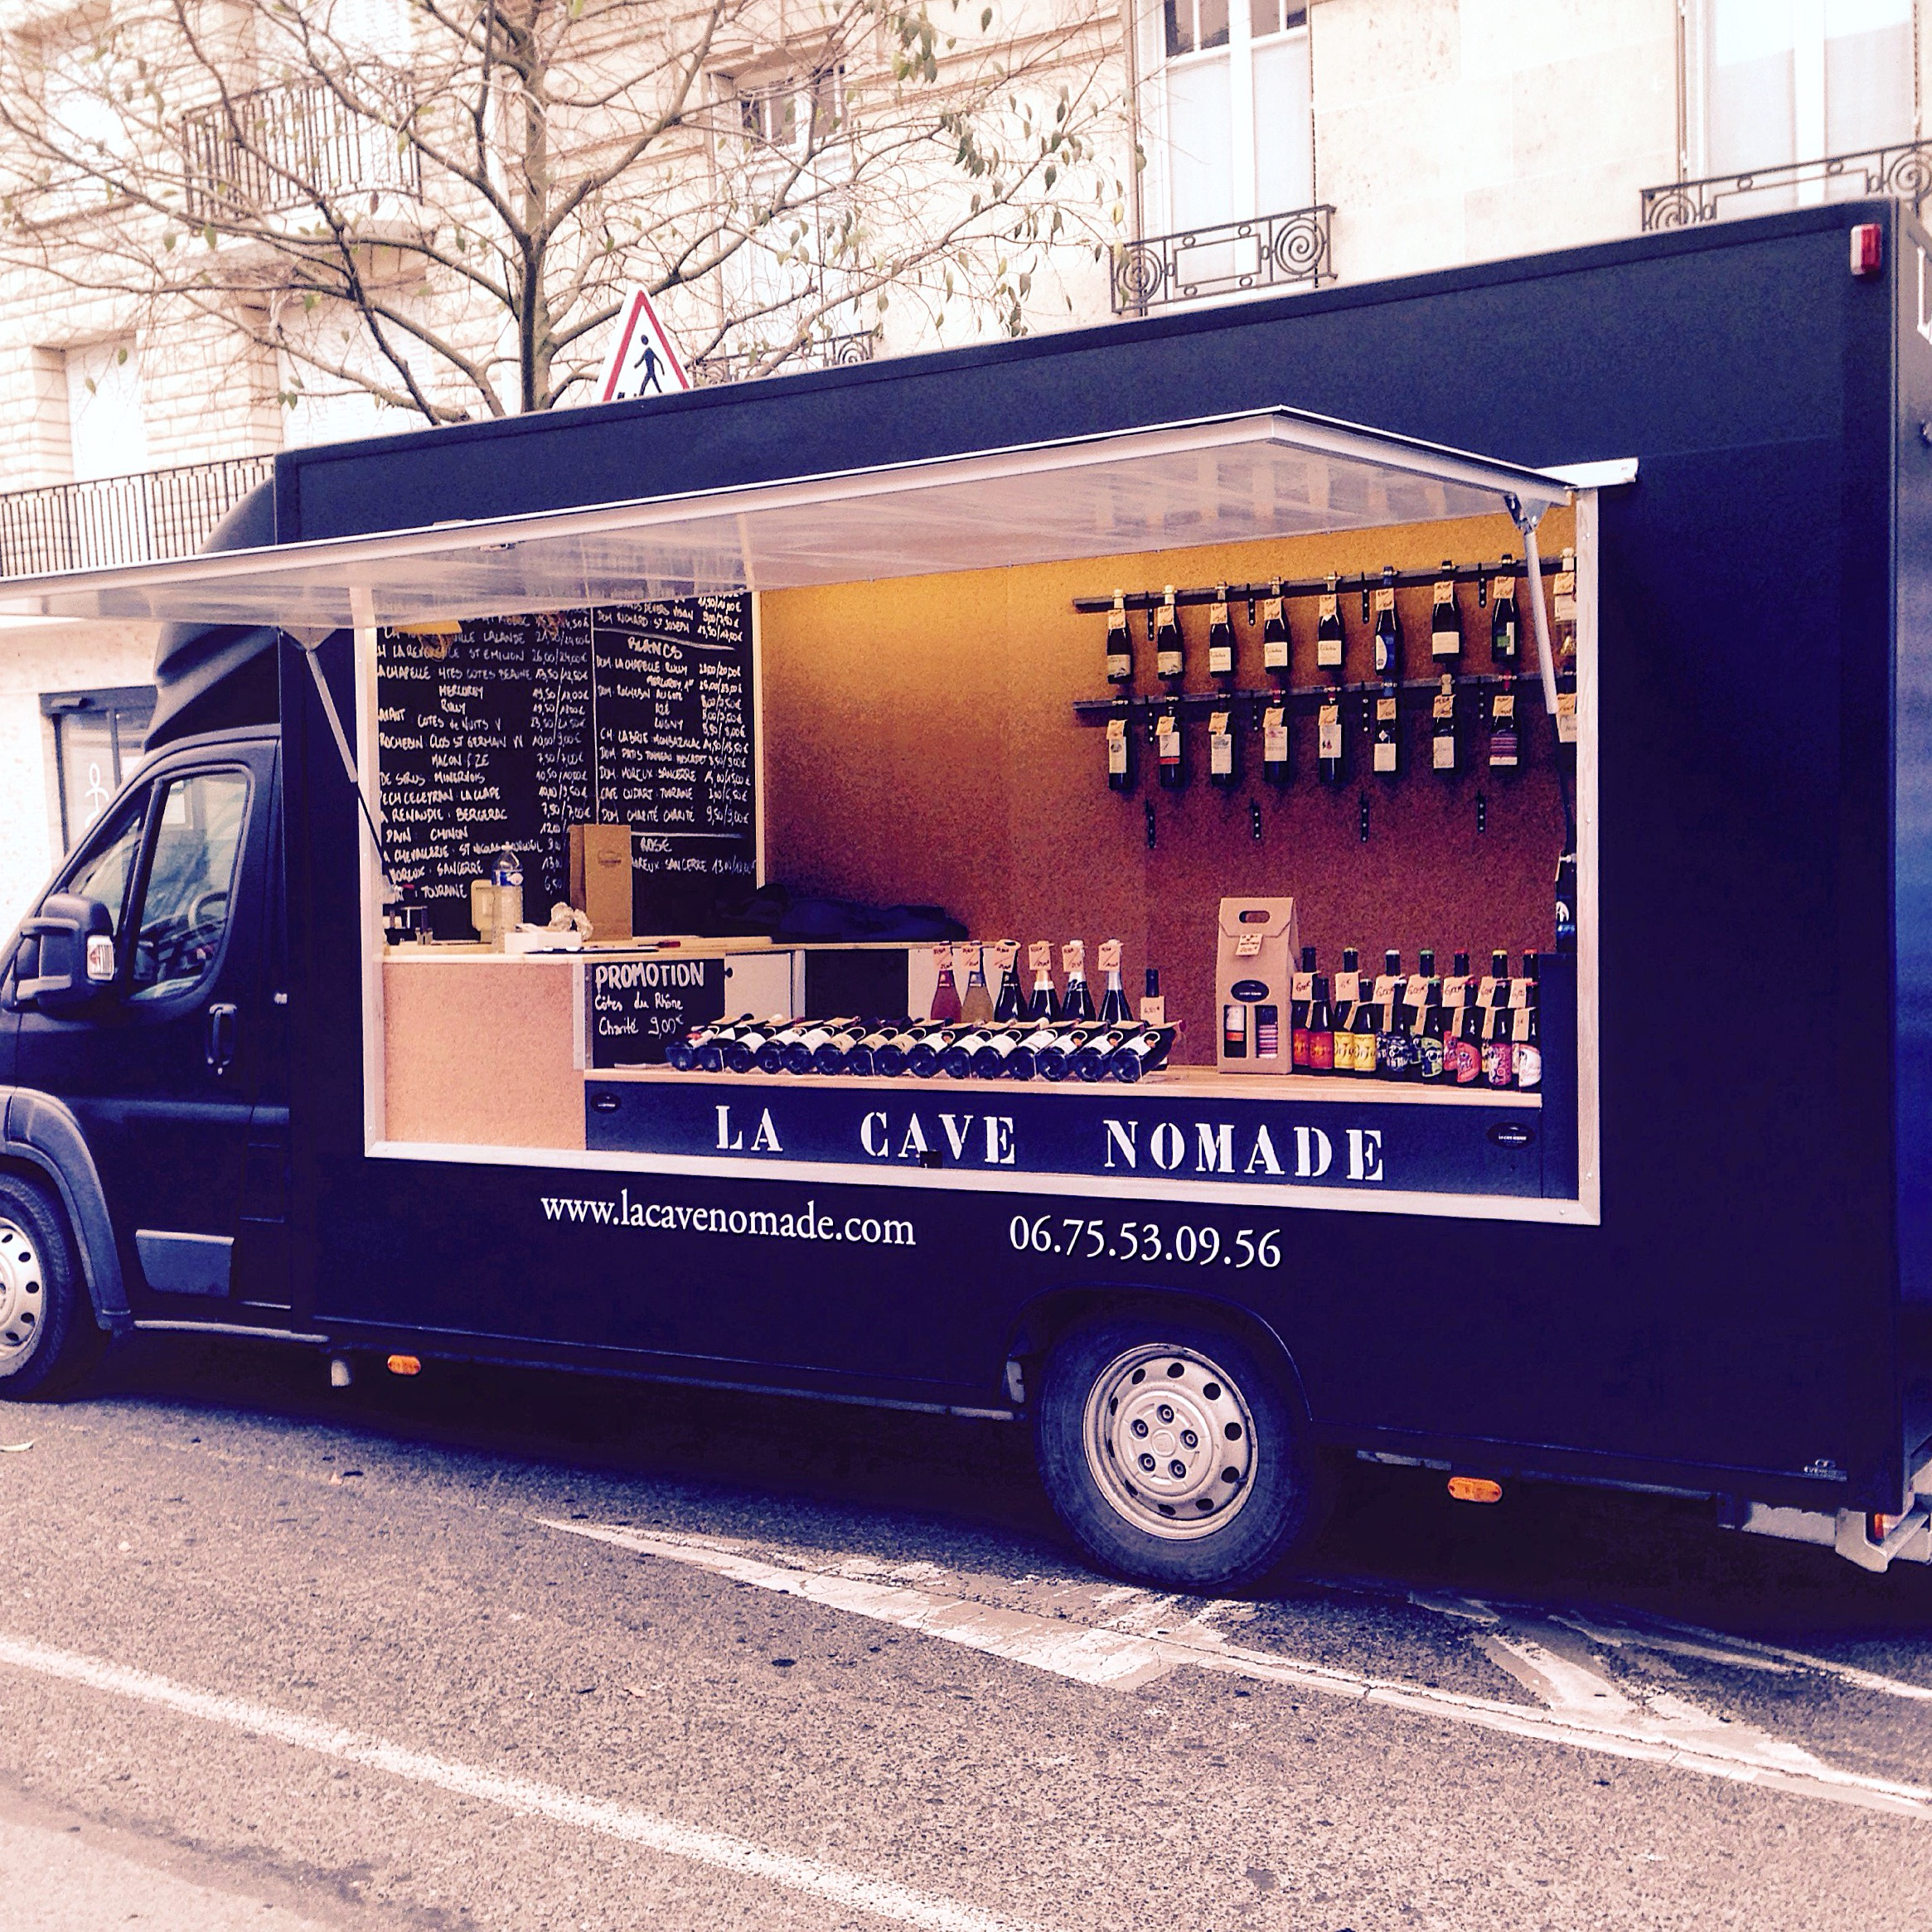 La cave nomade nouveau camion vins au c ur de reims for Bar 96 food truck